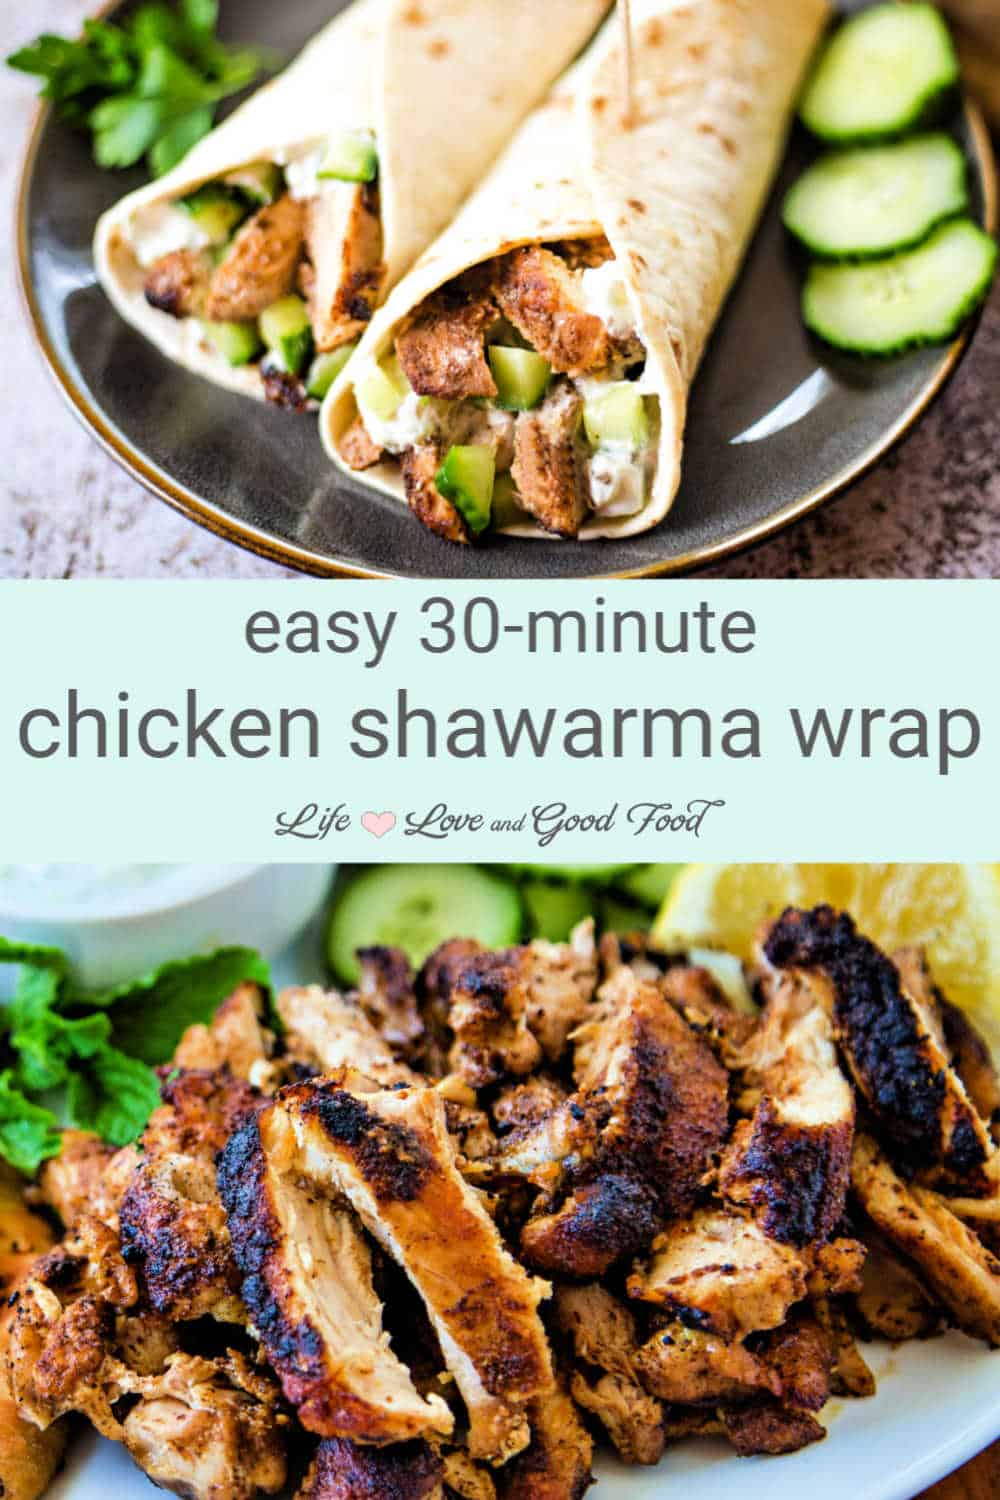 You can skip the marinating time with this Chicken Shawarma Wrap recipe. Simply combine savory pantry spices with minced garlic to create a rub for boneless chicken thighs. Then, sear the chicken in a hot cast iron skillet to create a nice char and allow the spices to bloom and deepen the flavor. Slice and serve the chicken shawarma on naan, pita bread, or even tortillas with cucumbers, arugula, and cucumber sauce with a squeeze of fresh lemon. This makes a delicious and EASY meal.